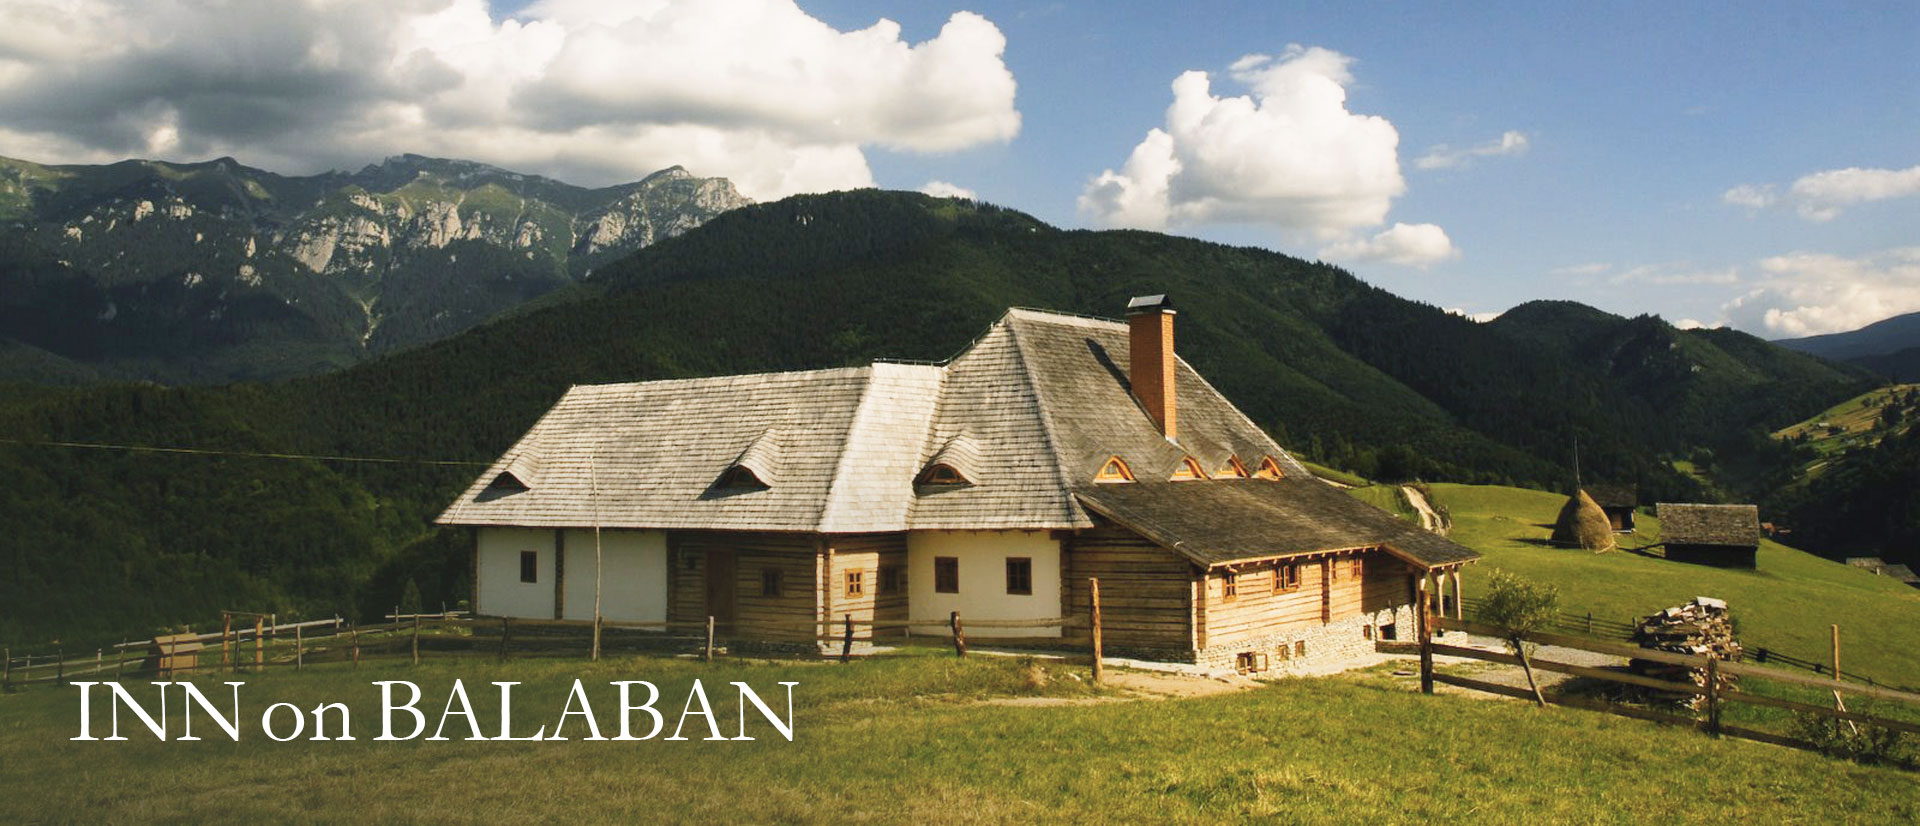 The Inn on Balaban